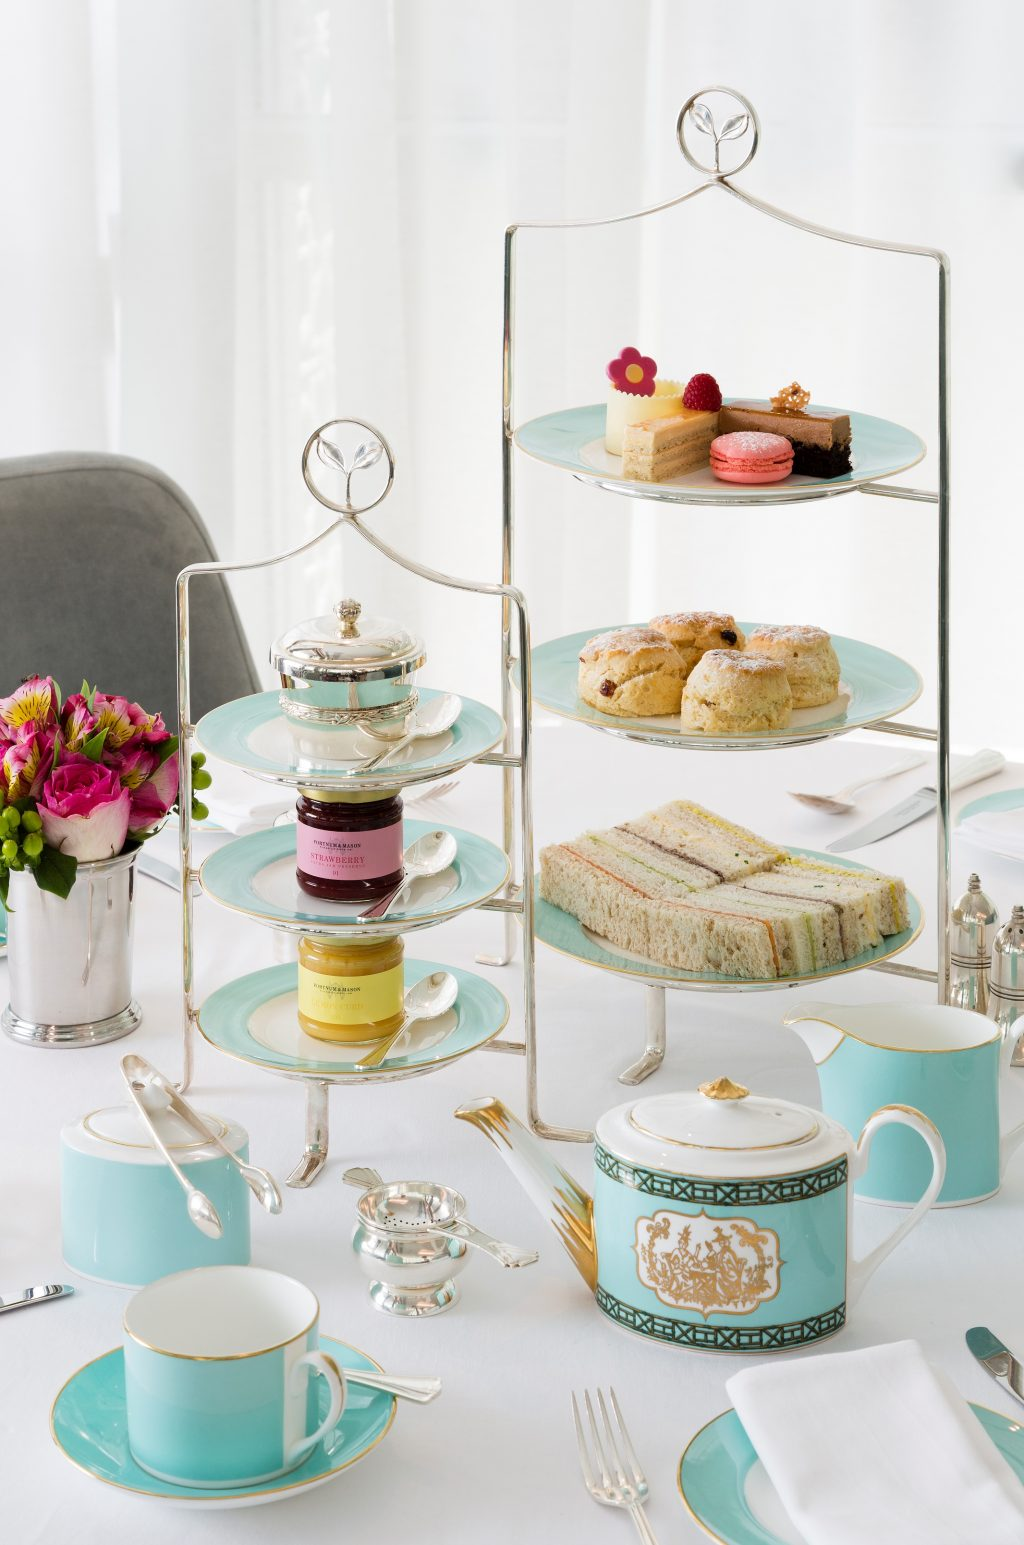 F&M - Afternoon Tea 2